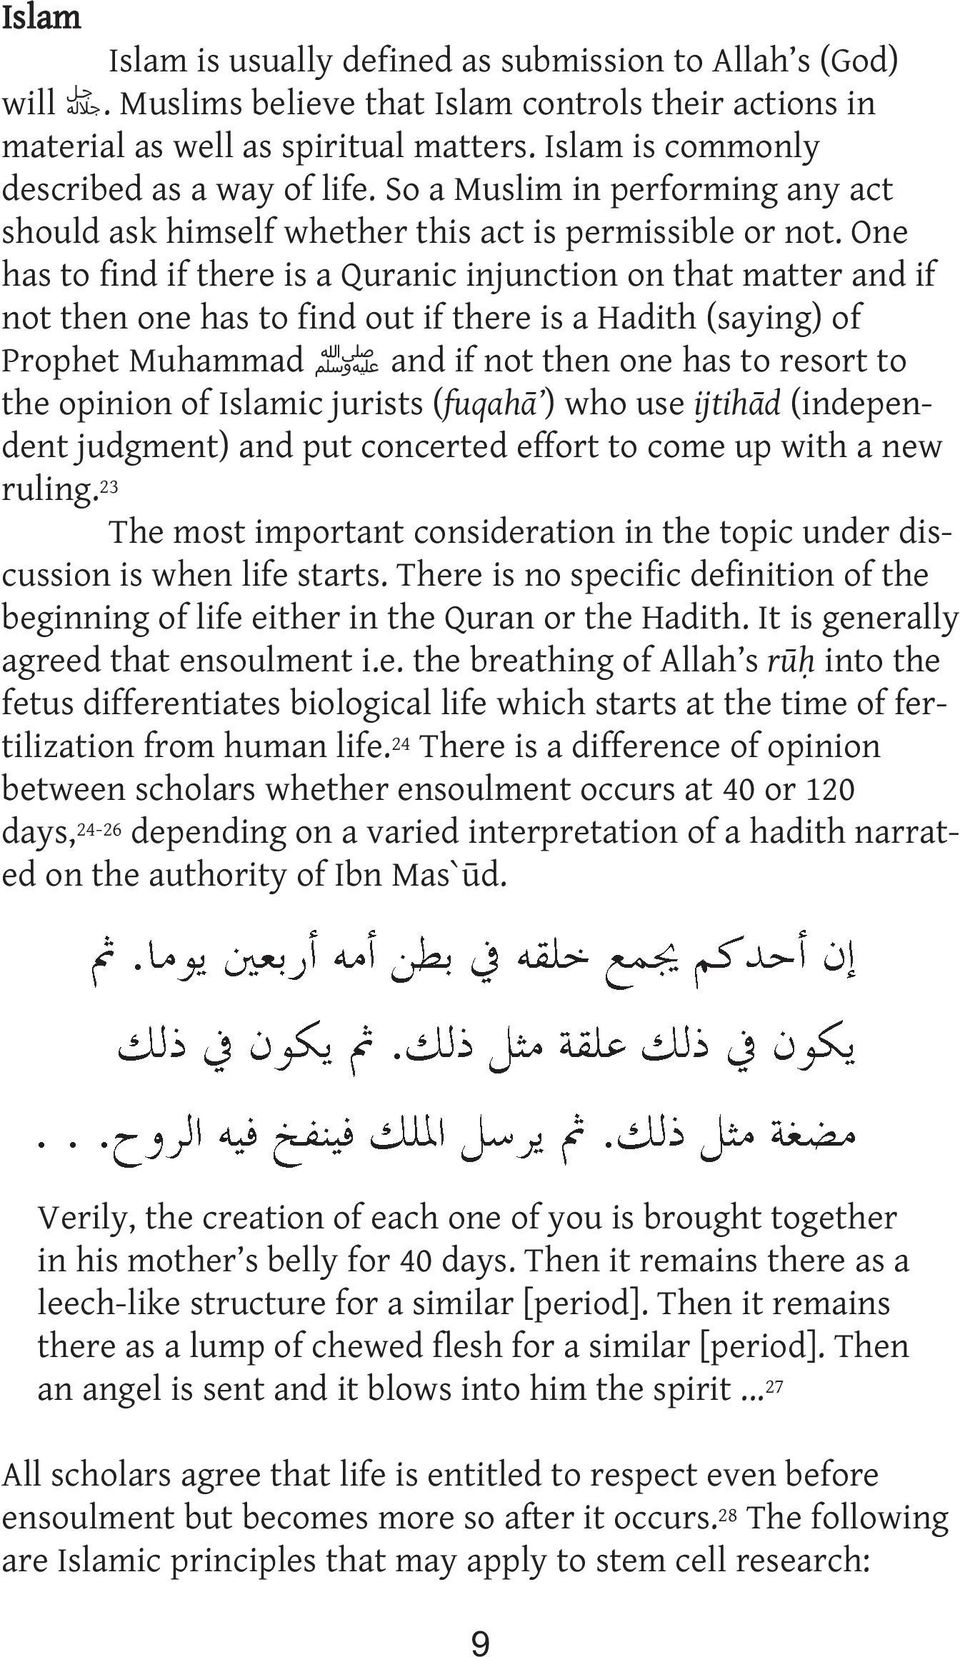 One has to find if there is a Quranic injunction on that matter and if not then one has to find out if there is a Hadith (saying) of Prophet Muhammad ﷺ and if not then one has to resort to the